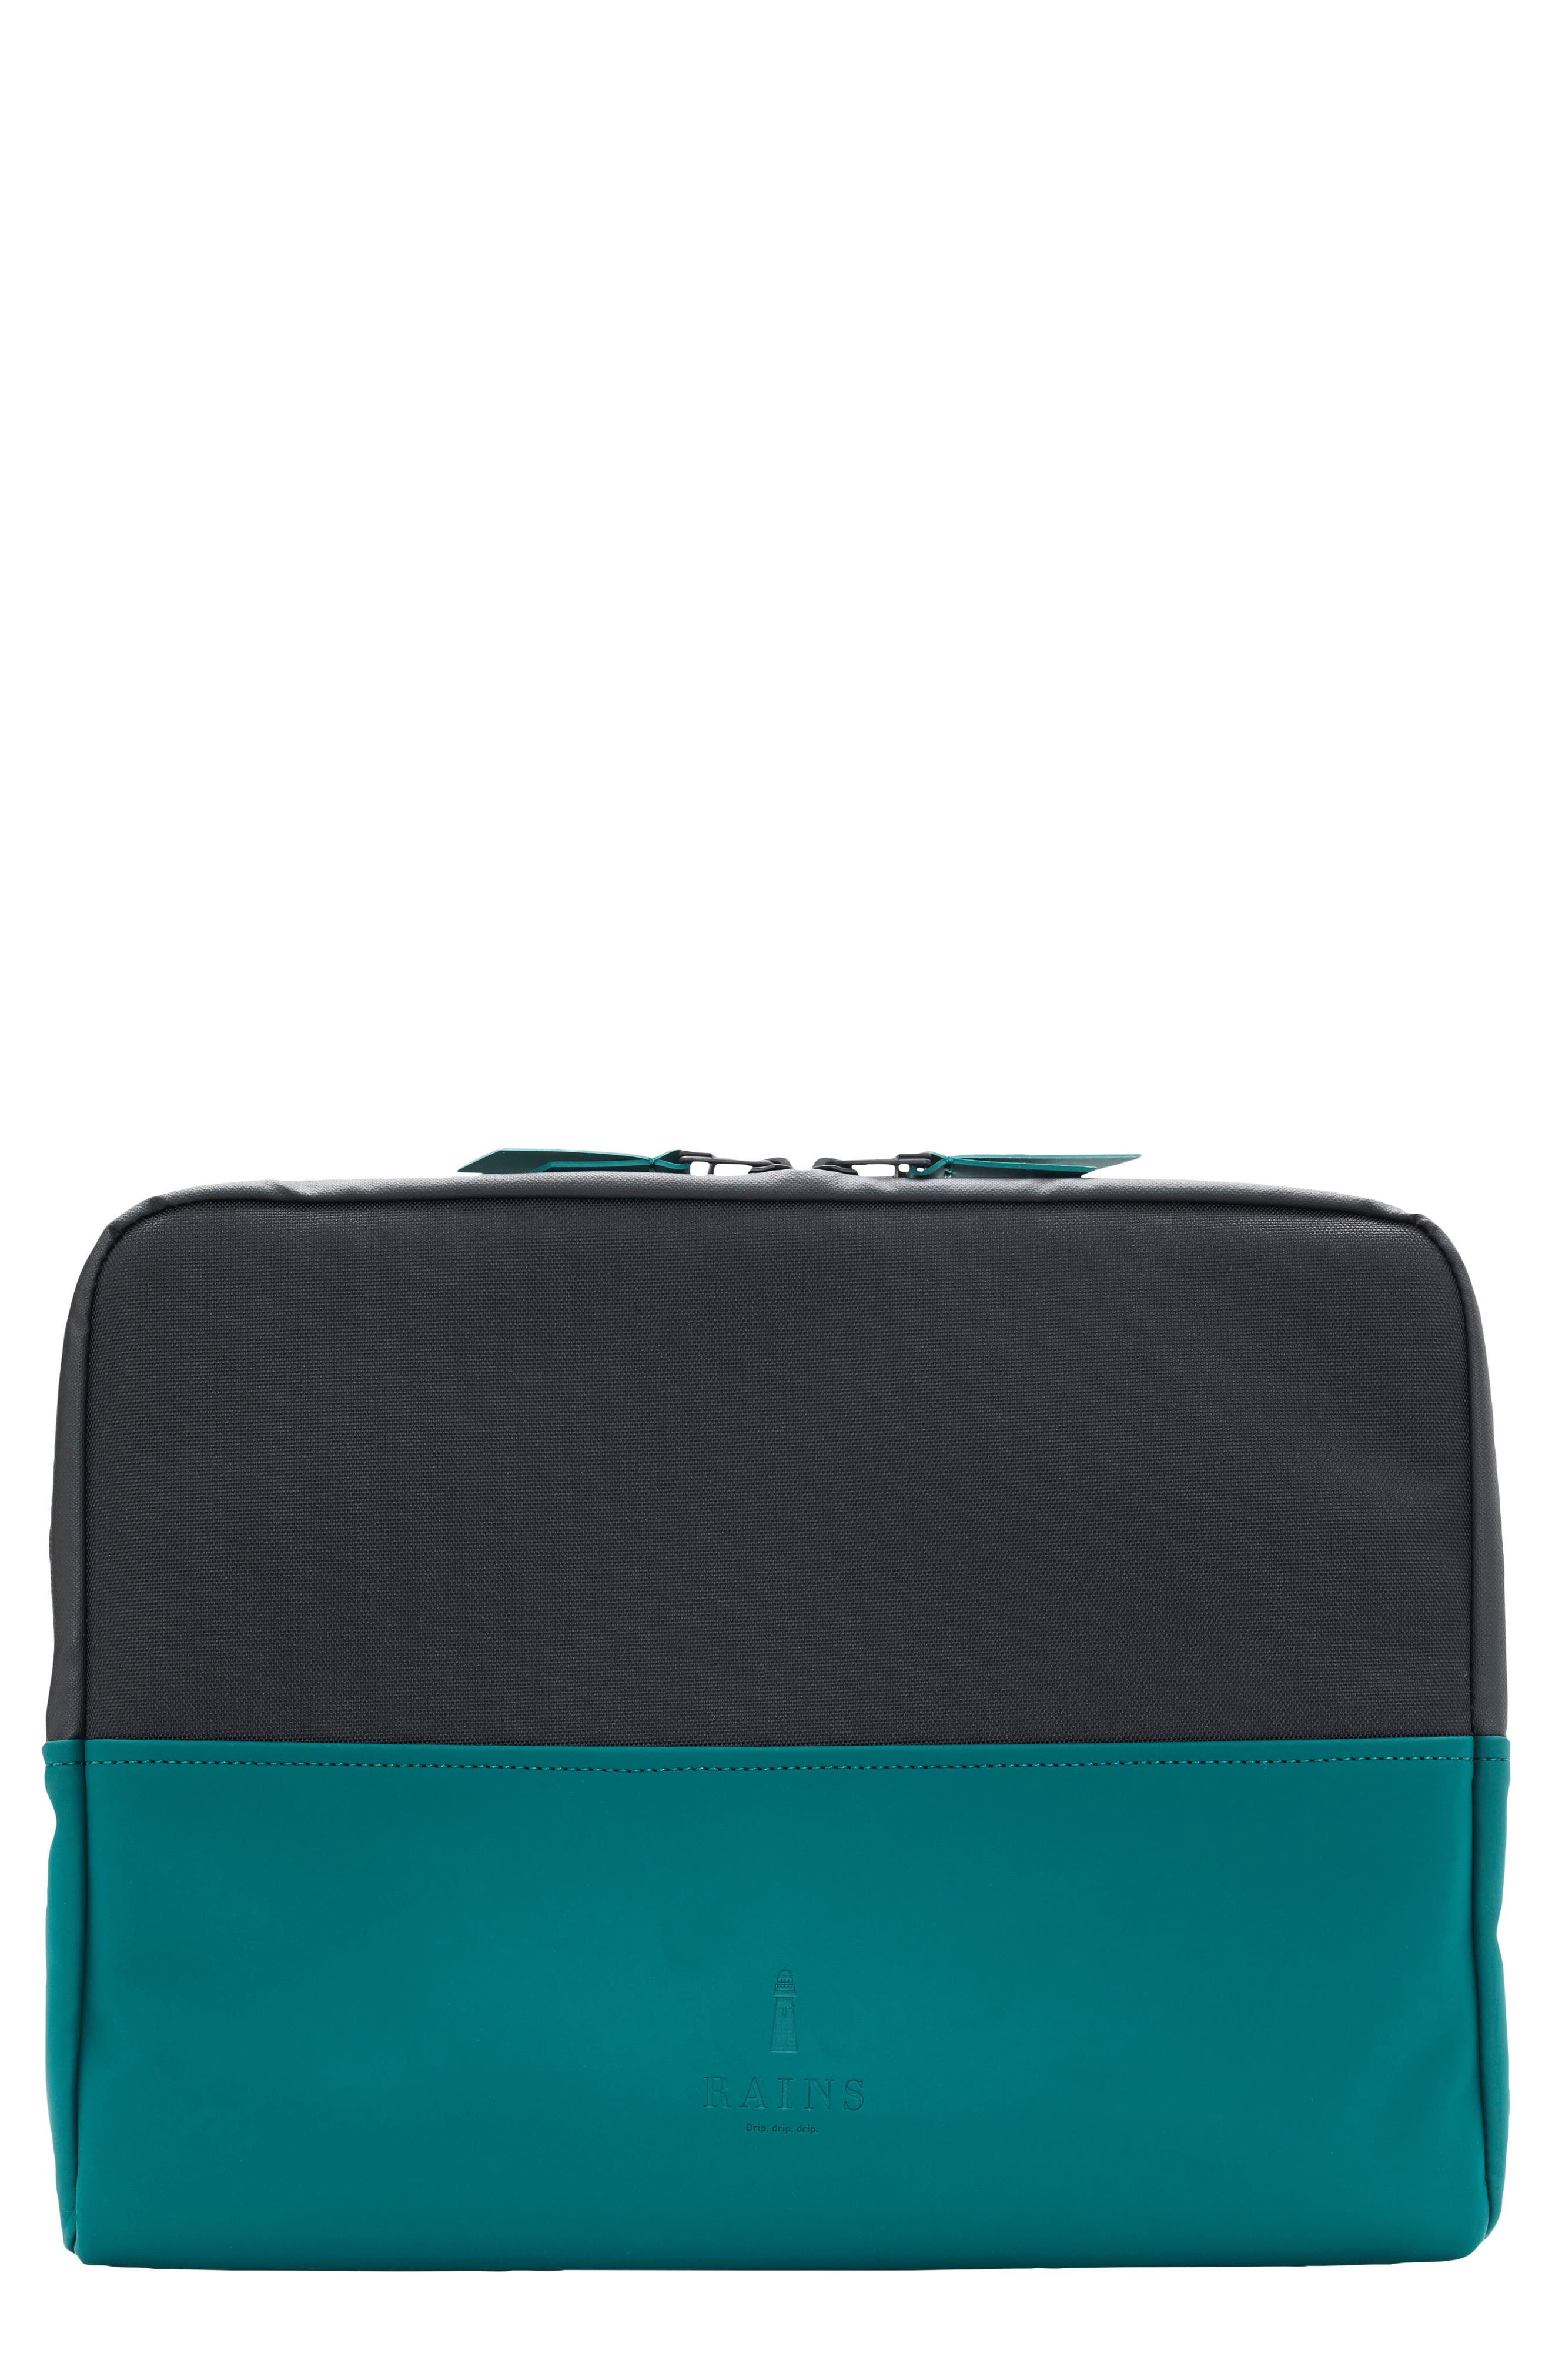 13-Inch Laptop Sleeve,                             Main thumbnail 1, color,                             Dark Teal